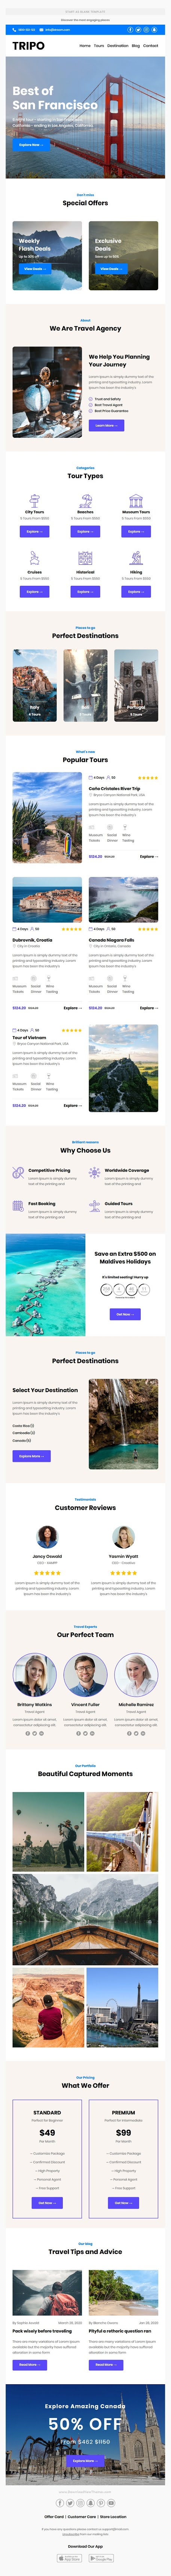 Responsive Email Template For Travel Agency With Free Email Editor